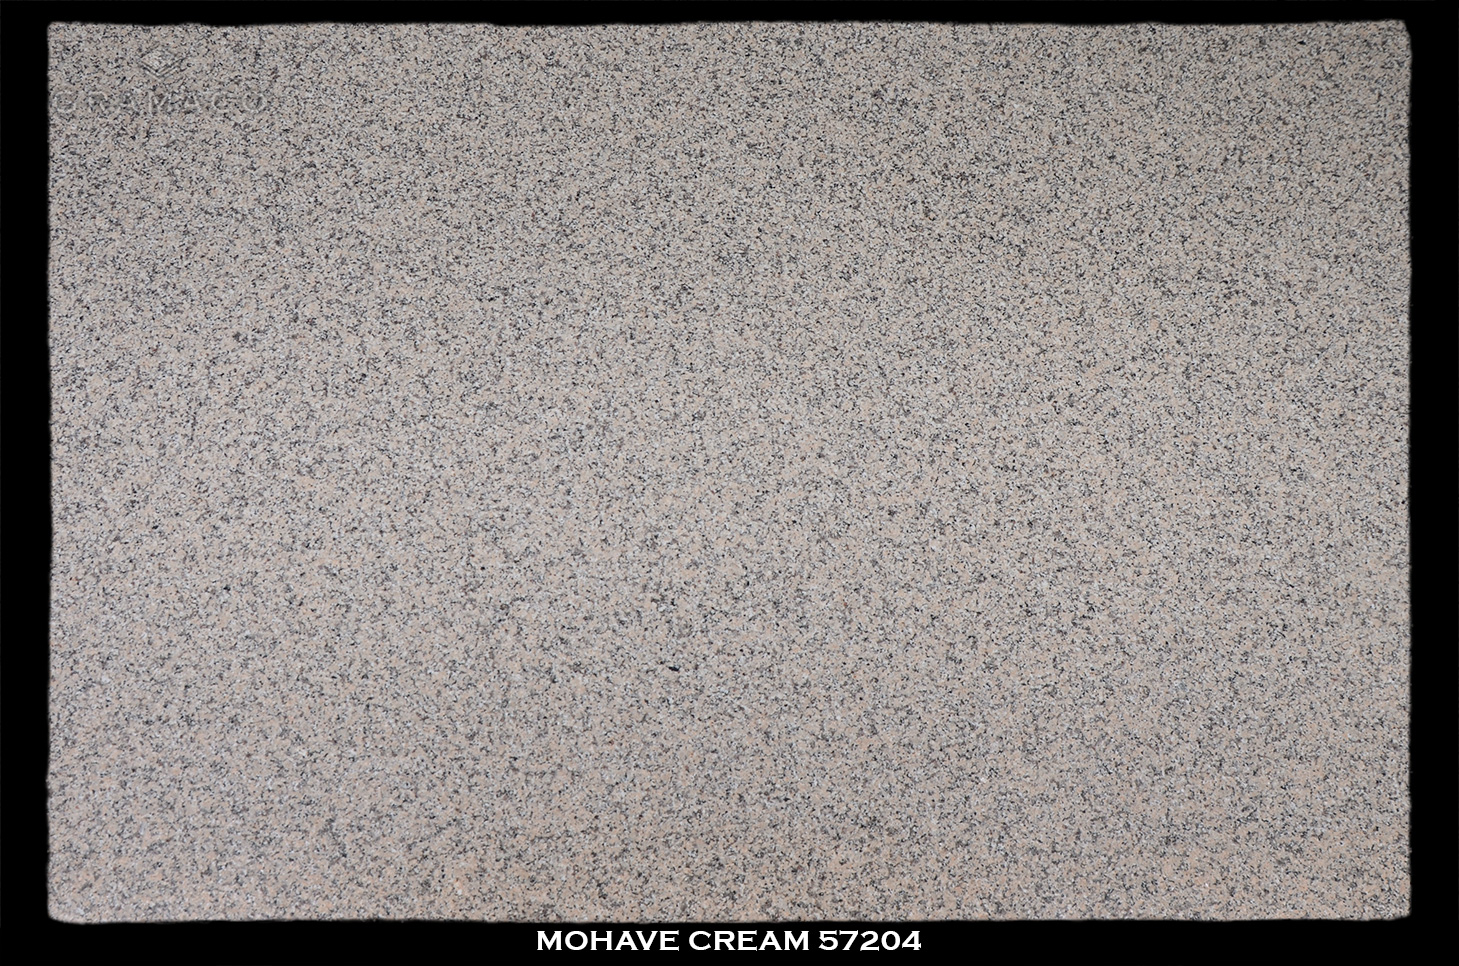 Mohave-Cream-57204-slab